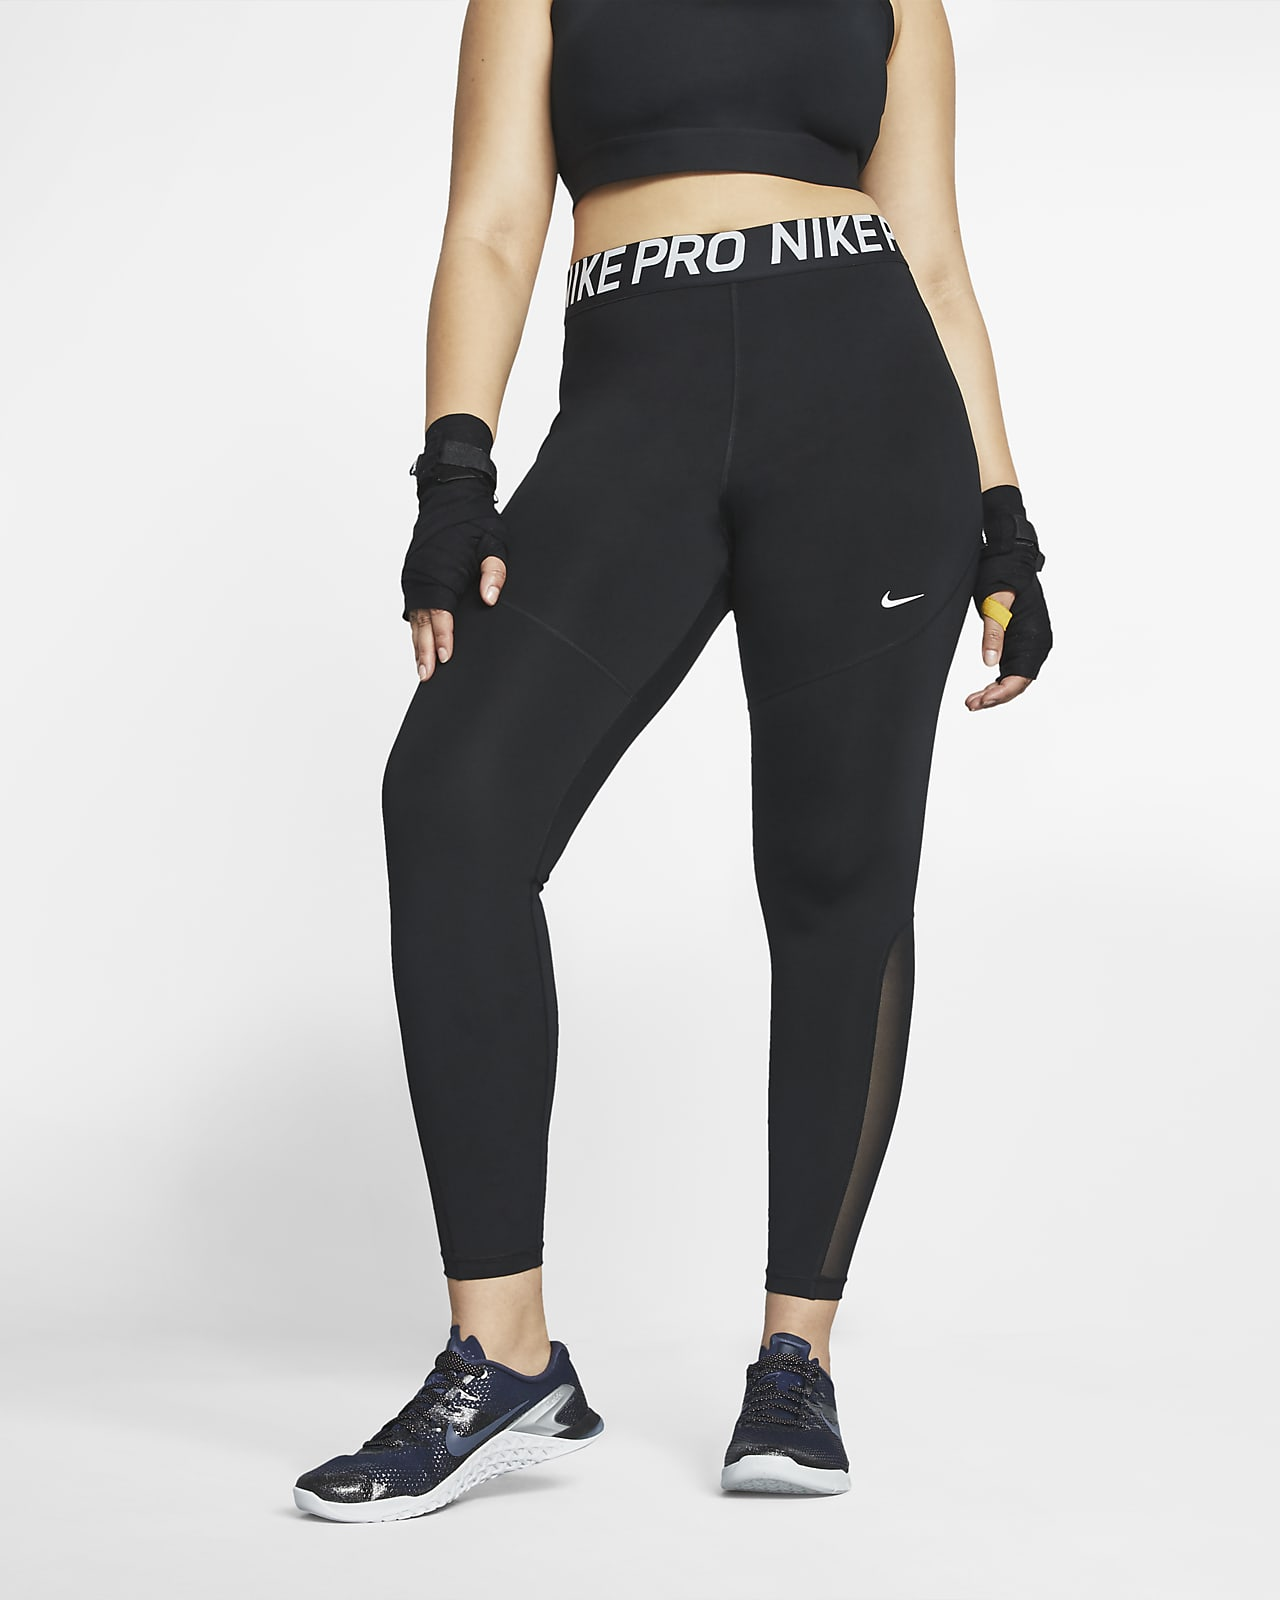 Nike Pro Women's Tights (Plus Size)